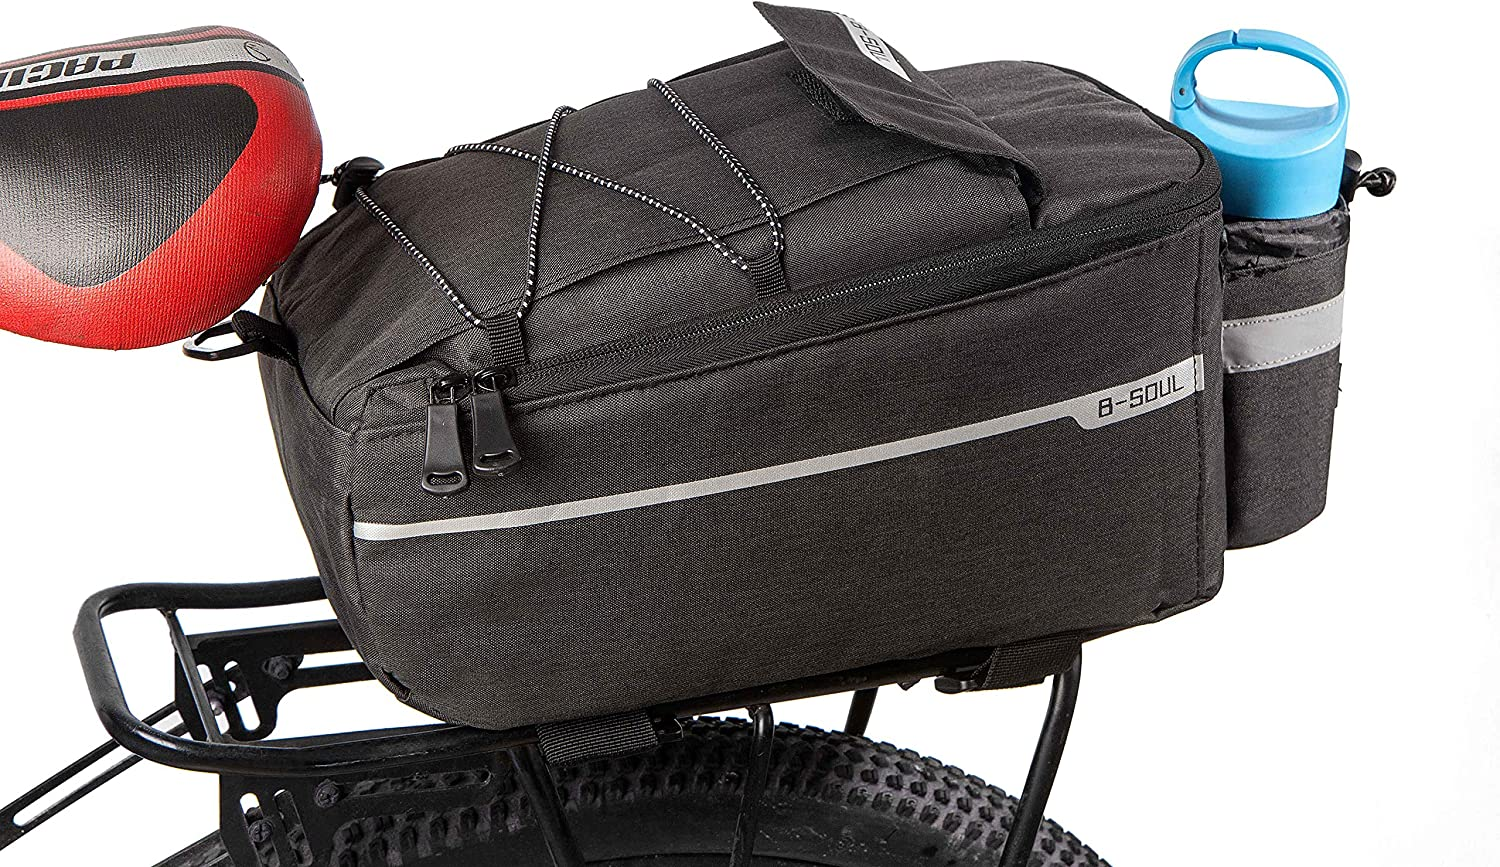 Cycling Bike Rear Rack Bag Insulated Trunk Cooler Bag for Warm or Cold Items,MTB Bike Storage Luggage Pannier Bag